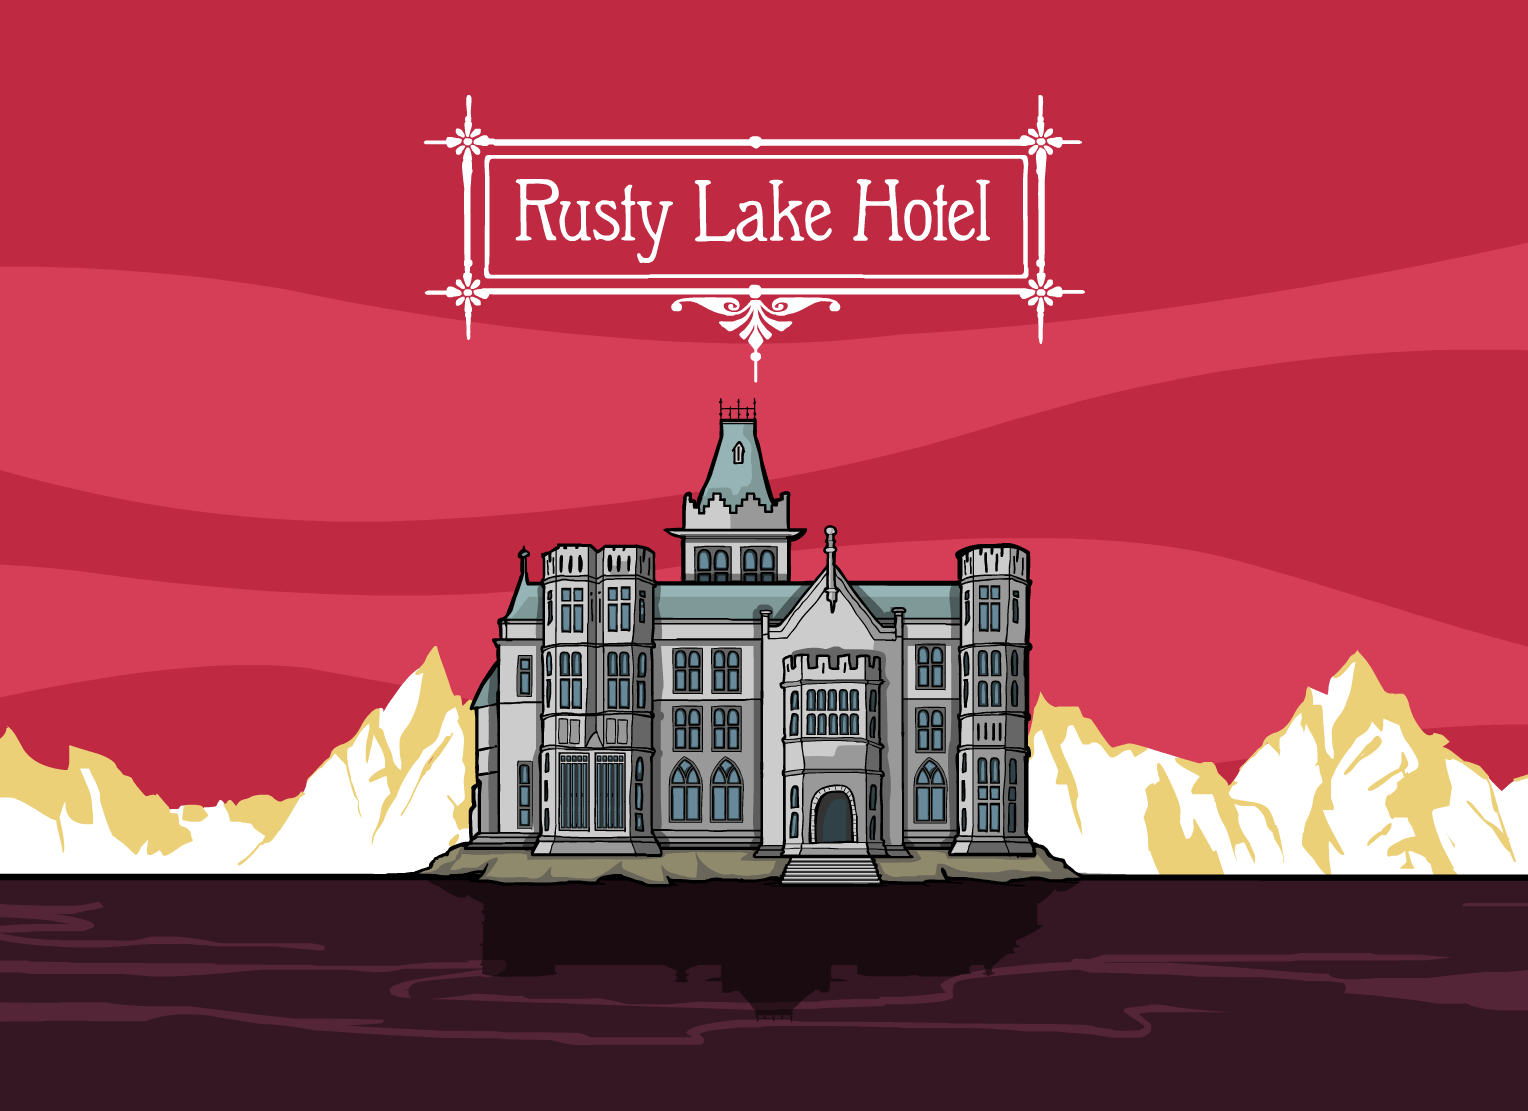 logo rusty lake